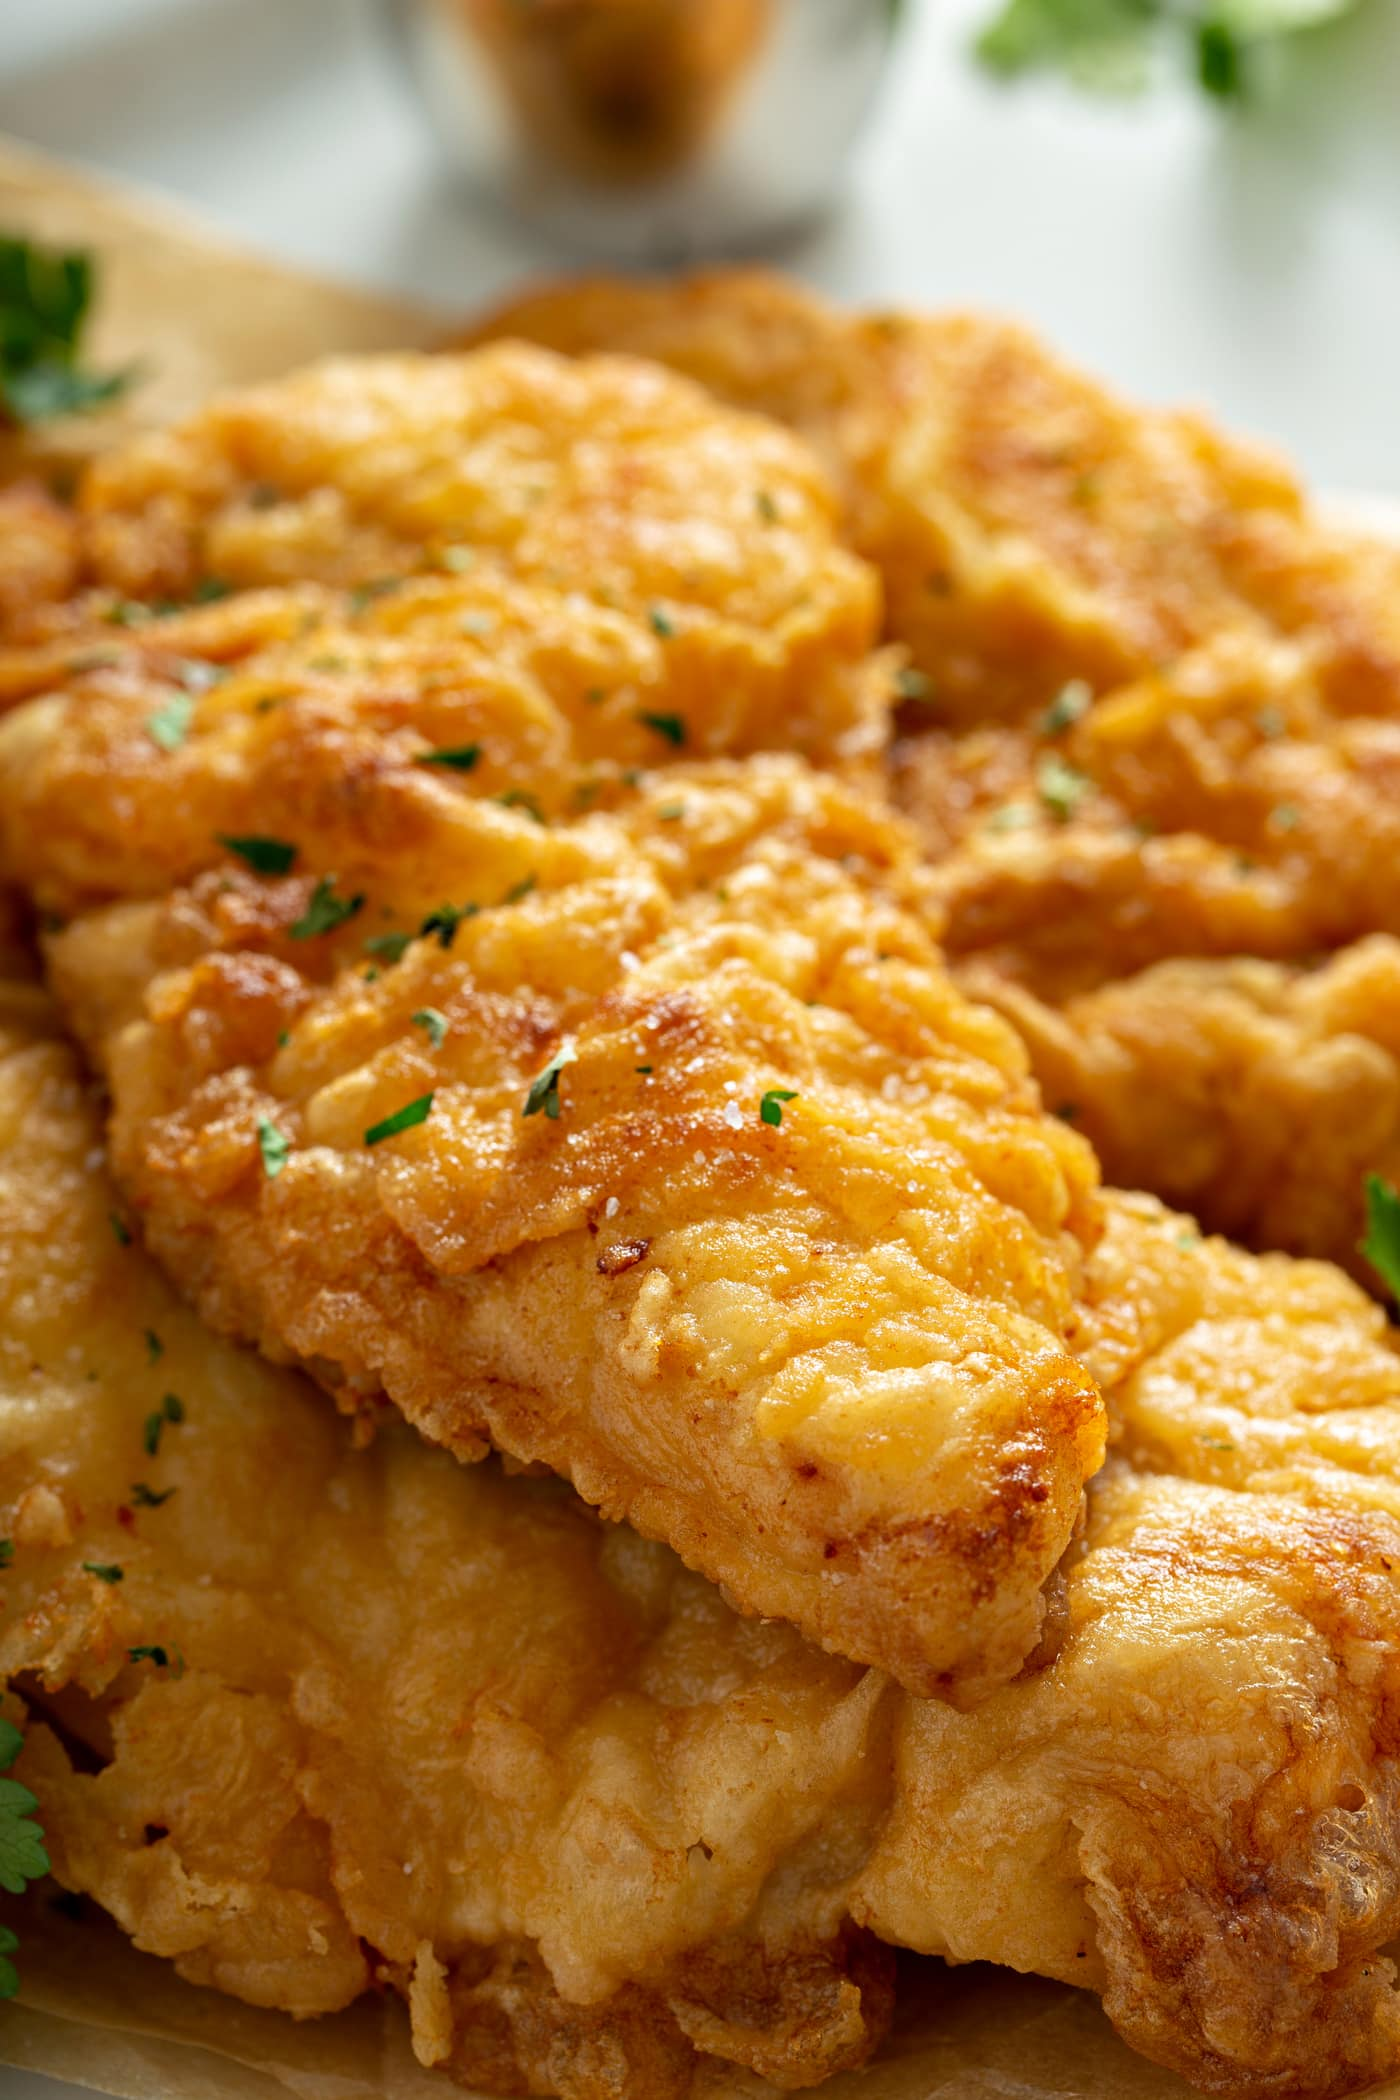 A close-up of chicken breasts that have been fried to a perfect golden brown.